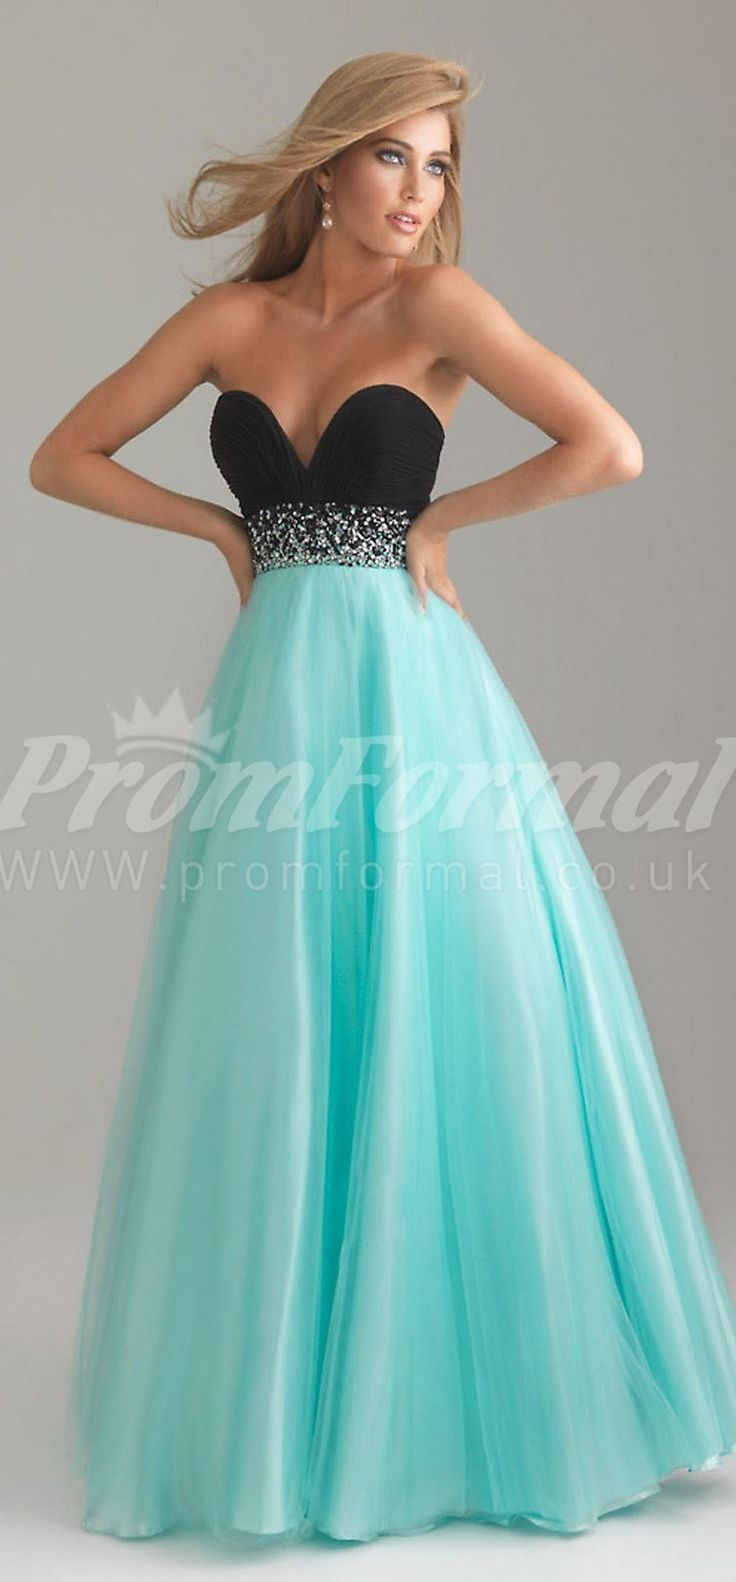 Light Blue A-line Prom Dress at promuk.co.uk